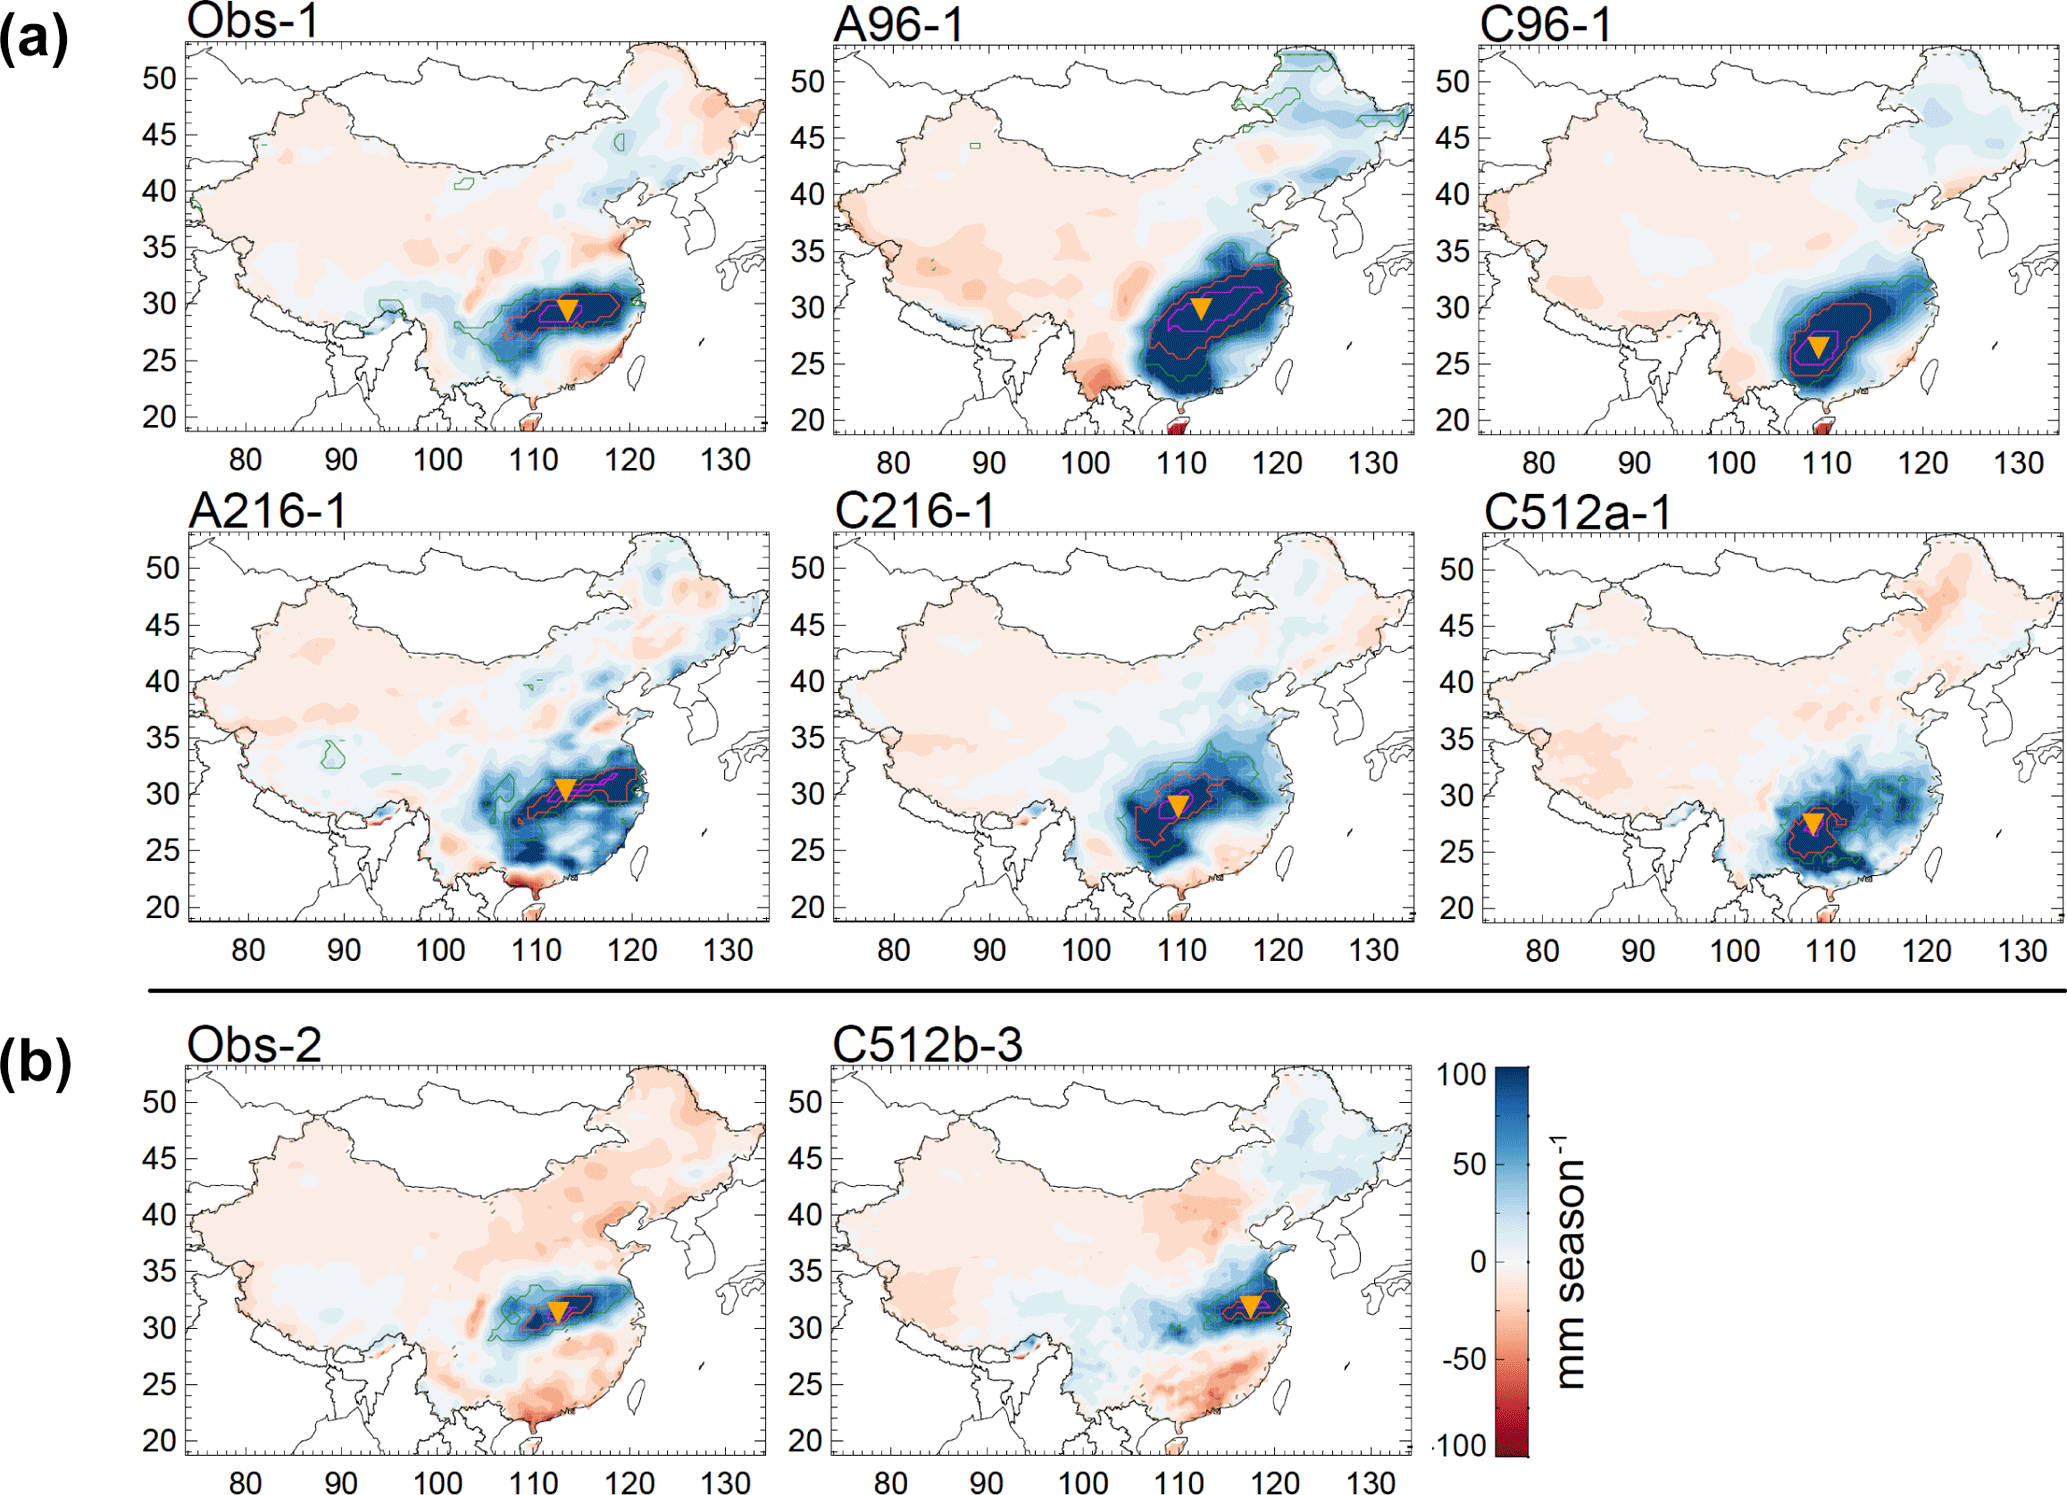 GMD - Interannual rainfall variability over China in the MetUM GA6